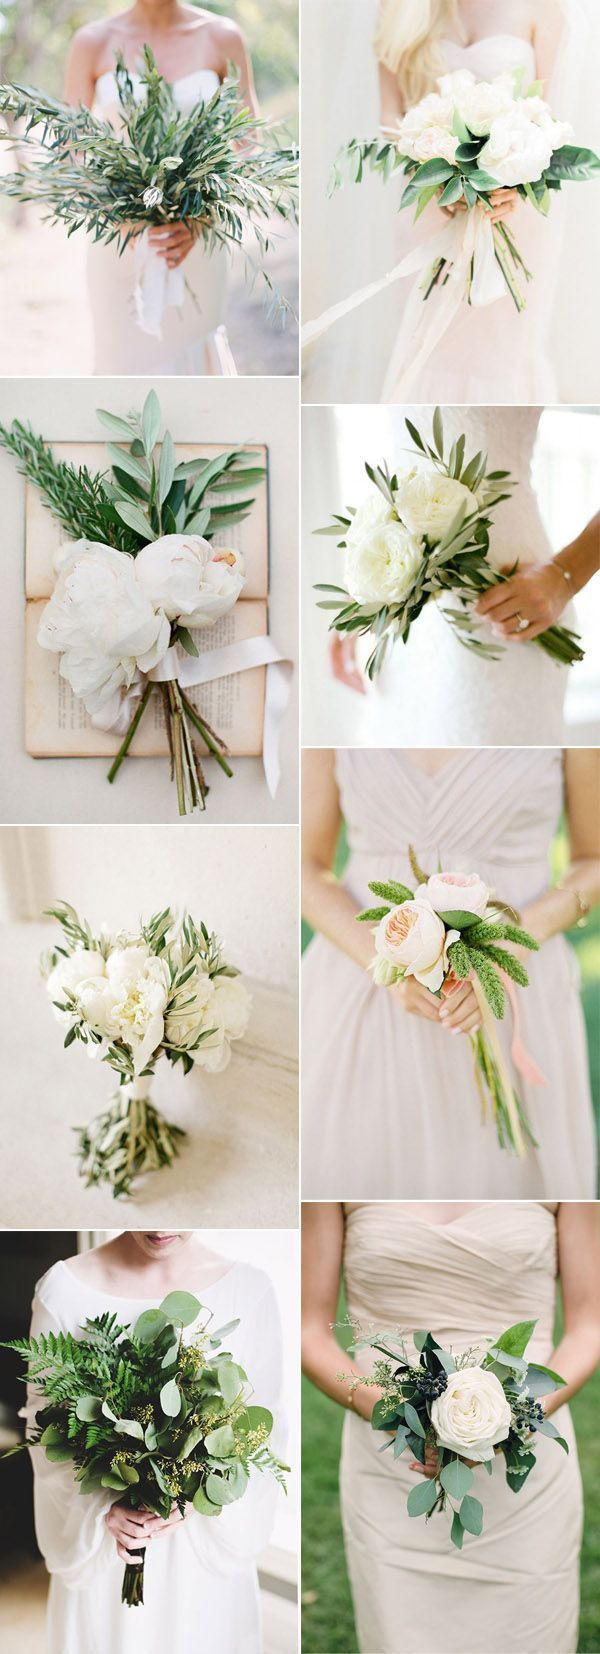 Minimalism doesnt have to be focused on a stark white look with 2017 2018 trends easy diy organic minimalist wedding ideas solutioingenieria Image collections